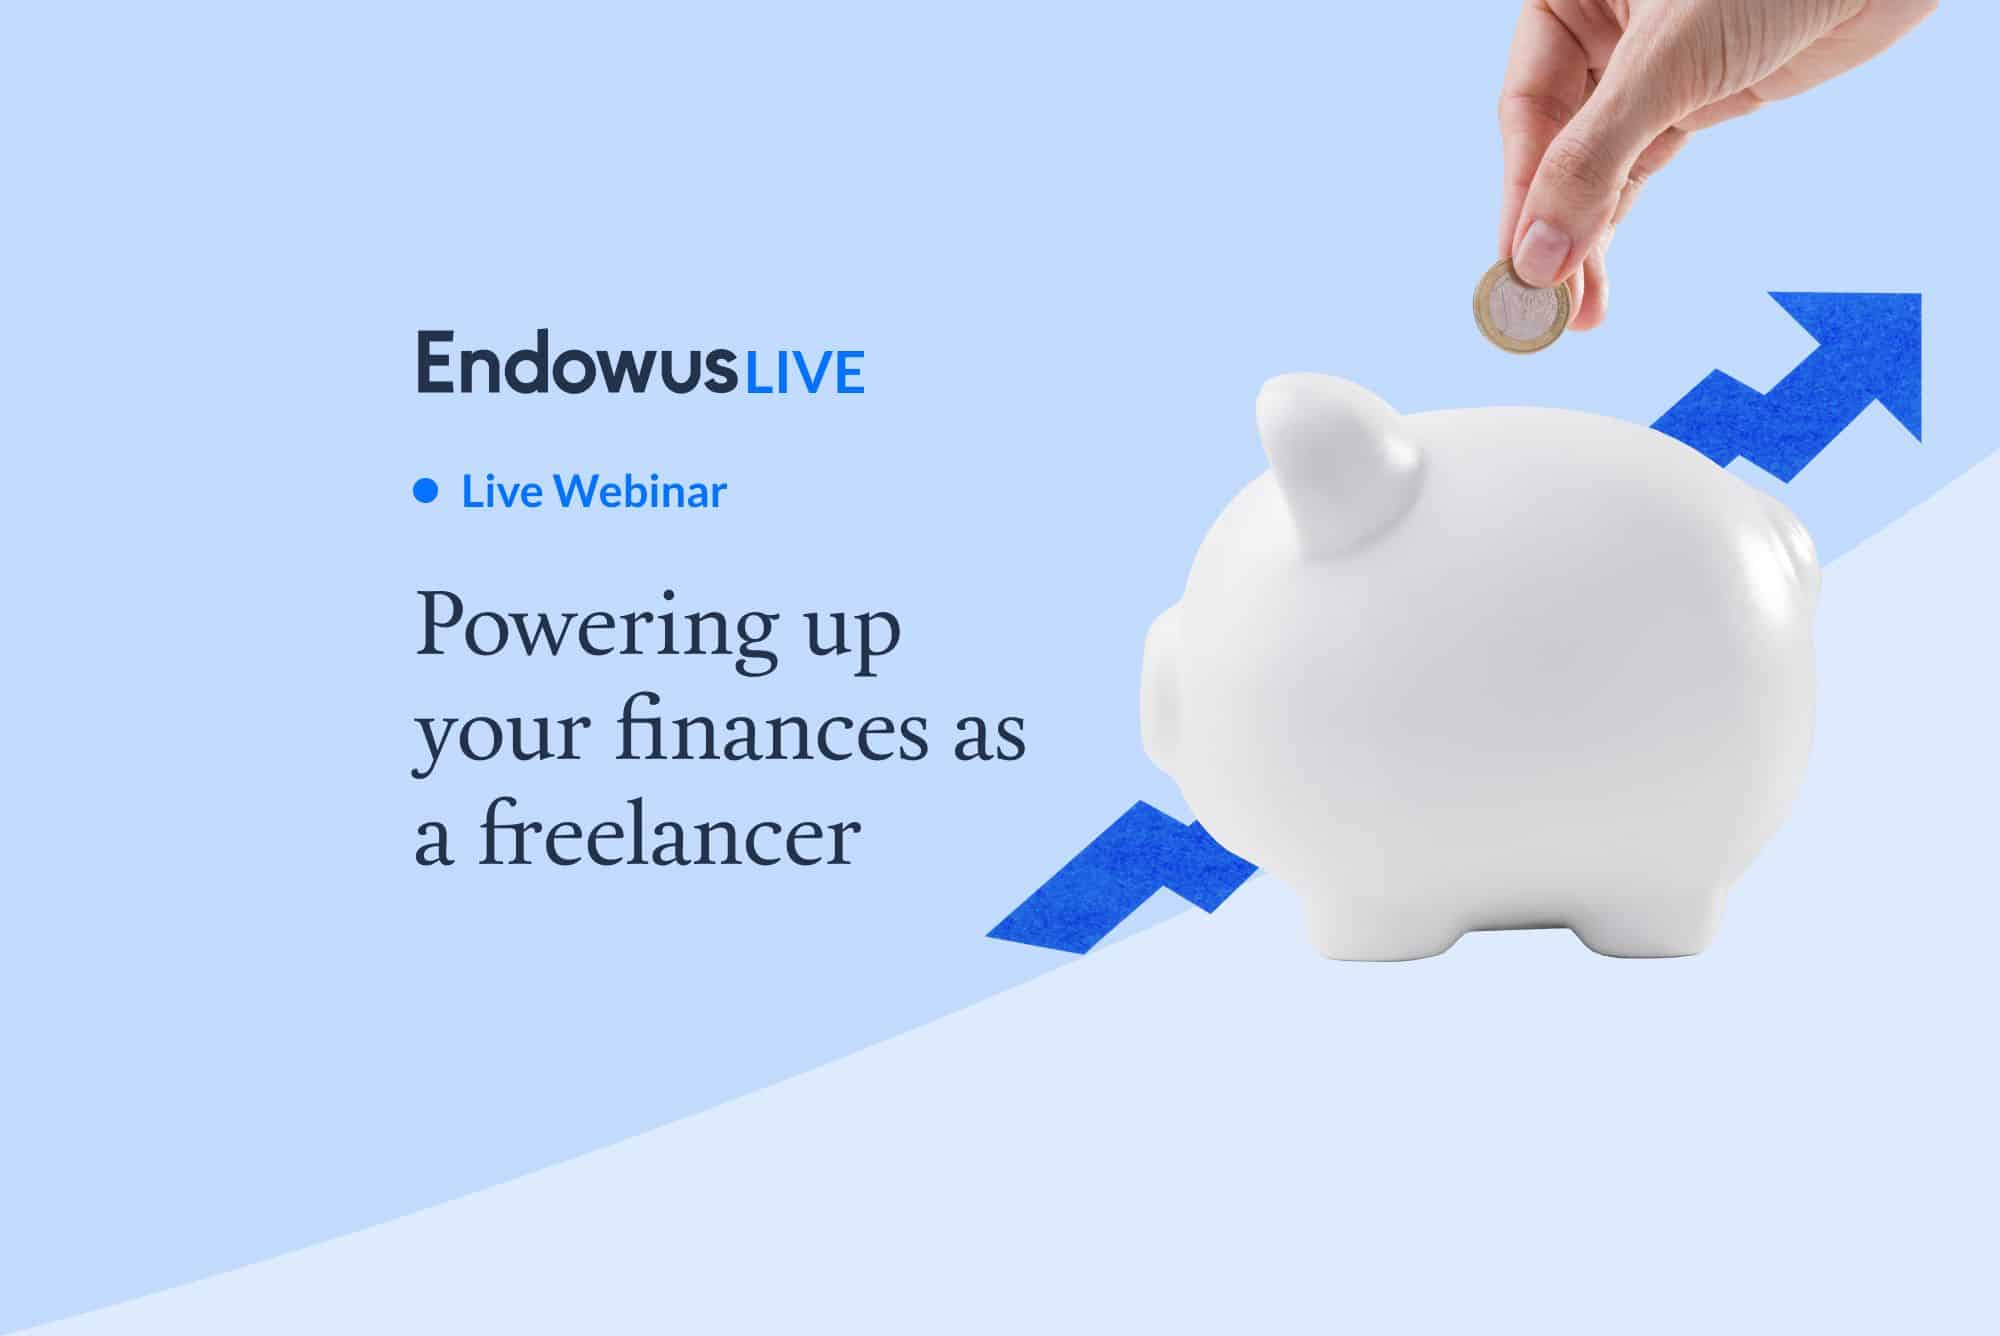 Webinar: Overcoming the challenges of the gig economy: Power up your finances as a freelancer